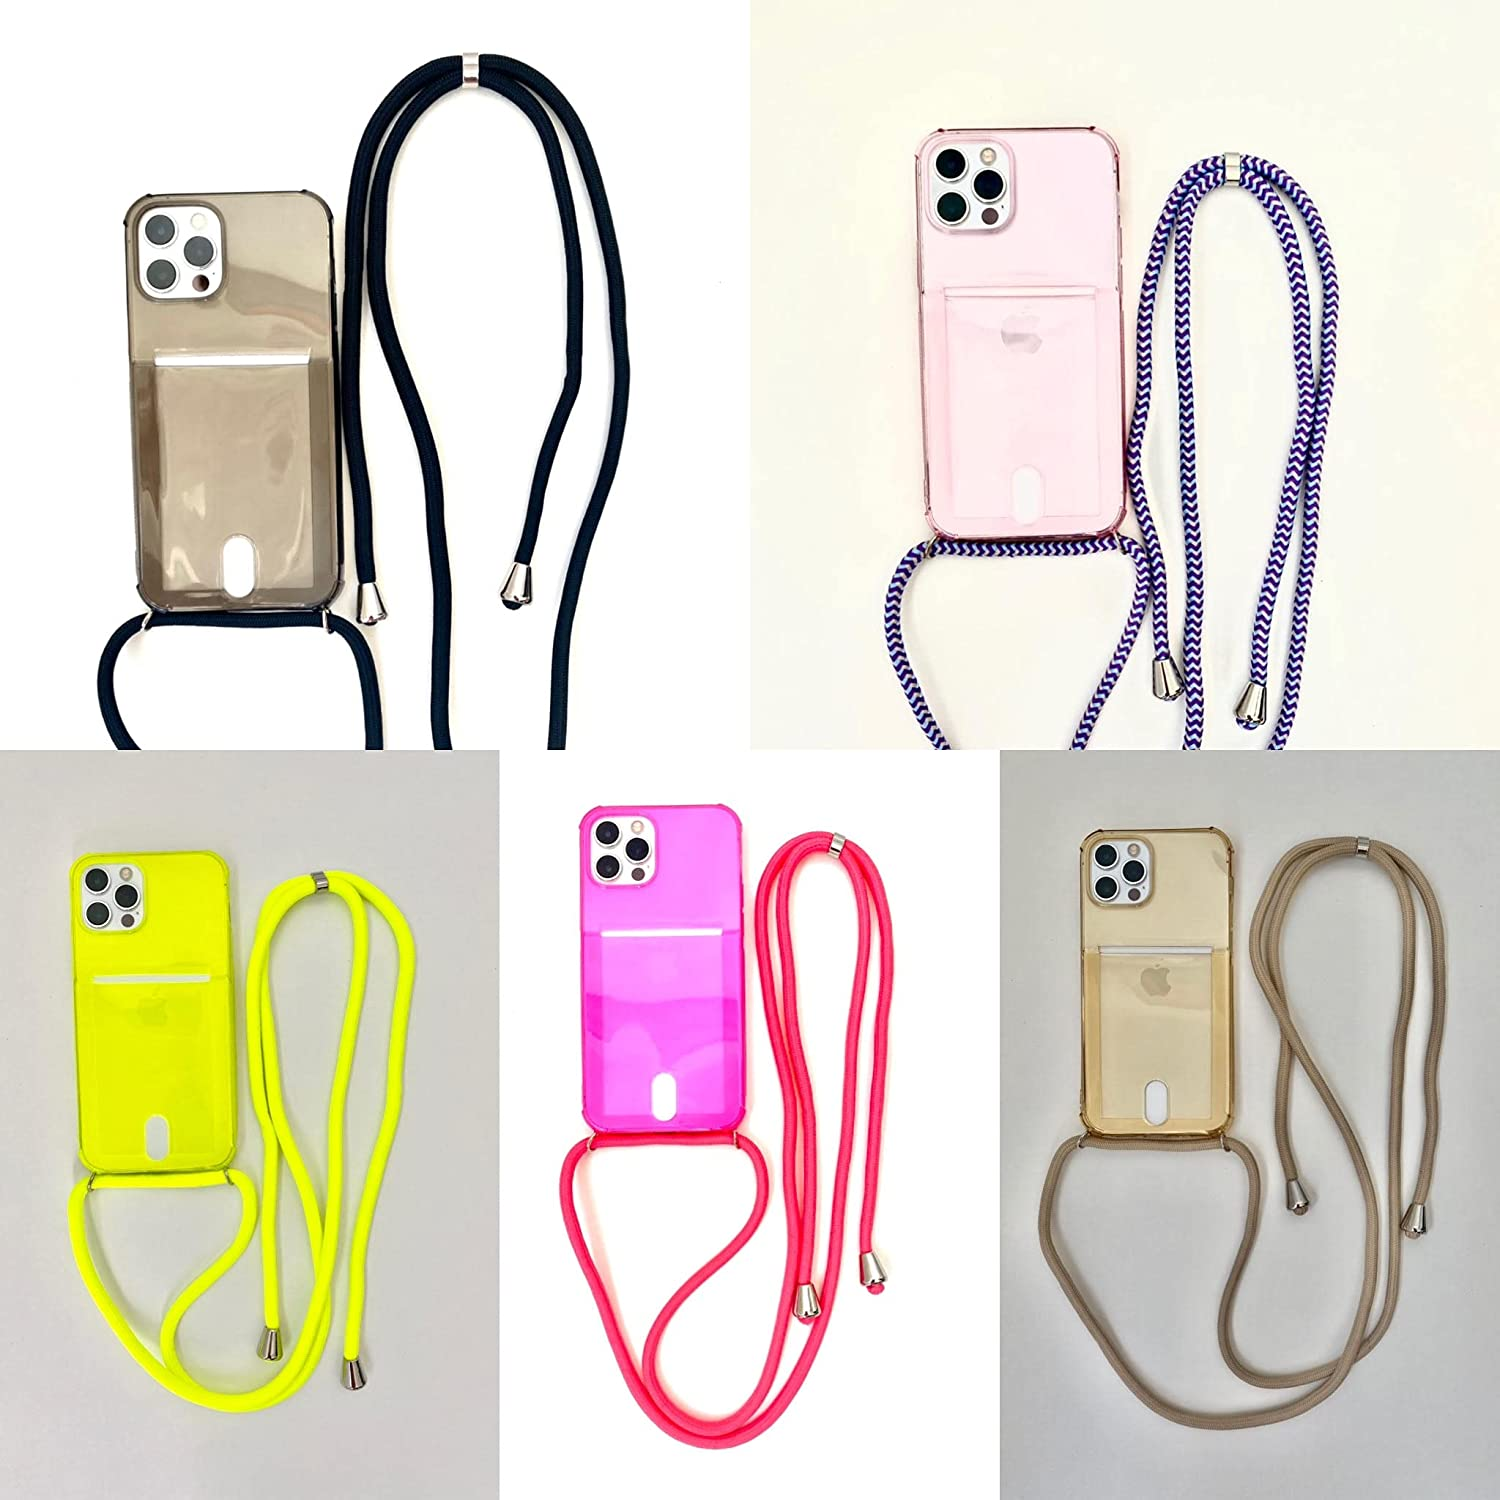 Crossbody Phone Case with Card Holder - TPU Protector Designed for iPhone 11, Holds 2 Cards - Hanging Smartphone with Shoulder/Neck Strap - Strong Metal Ring Attachment - Neutral (iPhone 11)